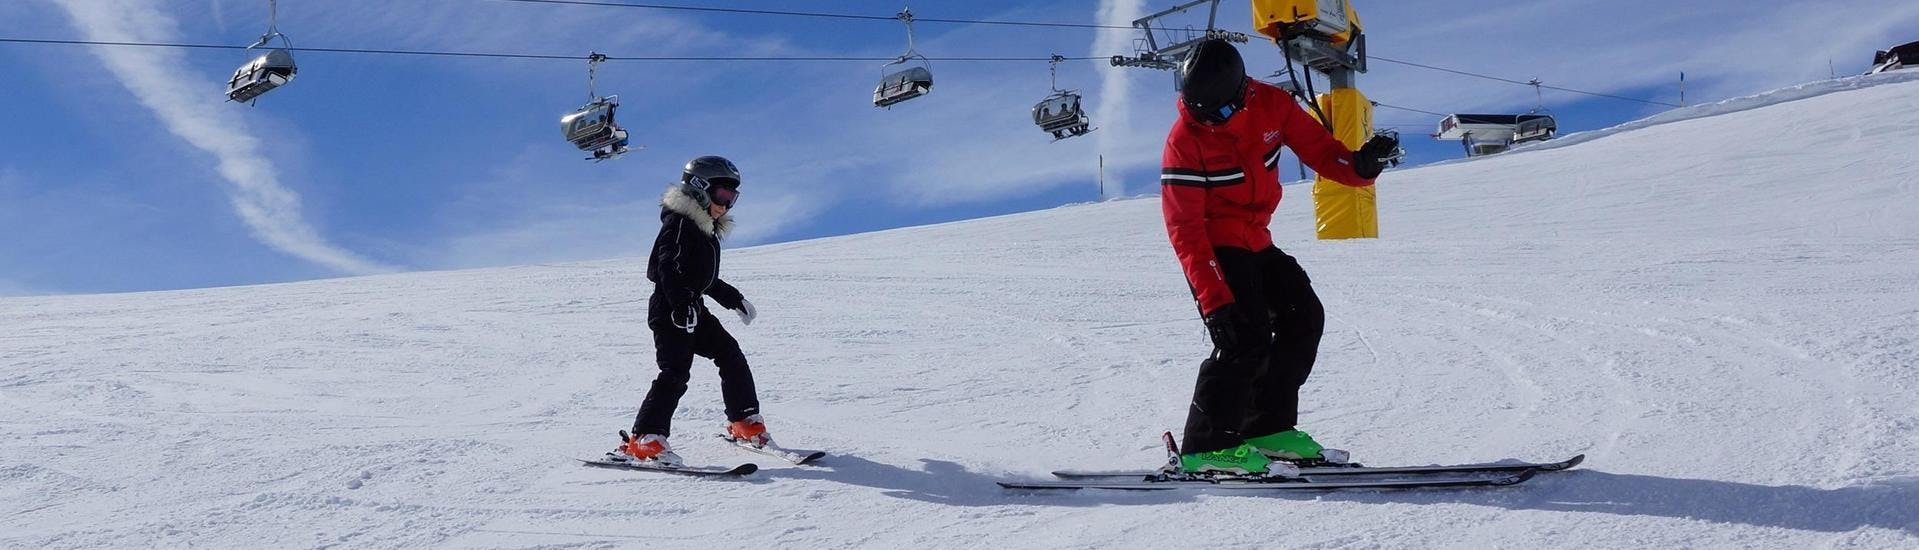 private-ski-lessons-for-kids-all-levels-ski-und-snowboardschule-vacancia-hero